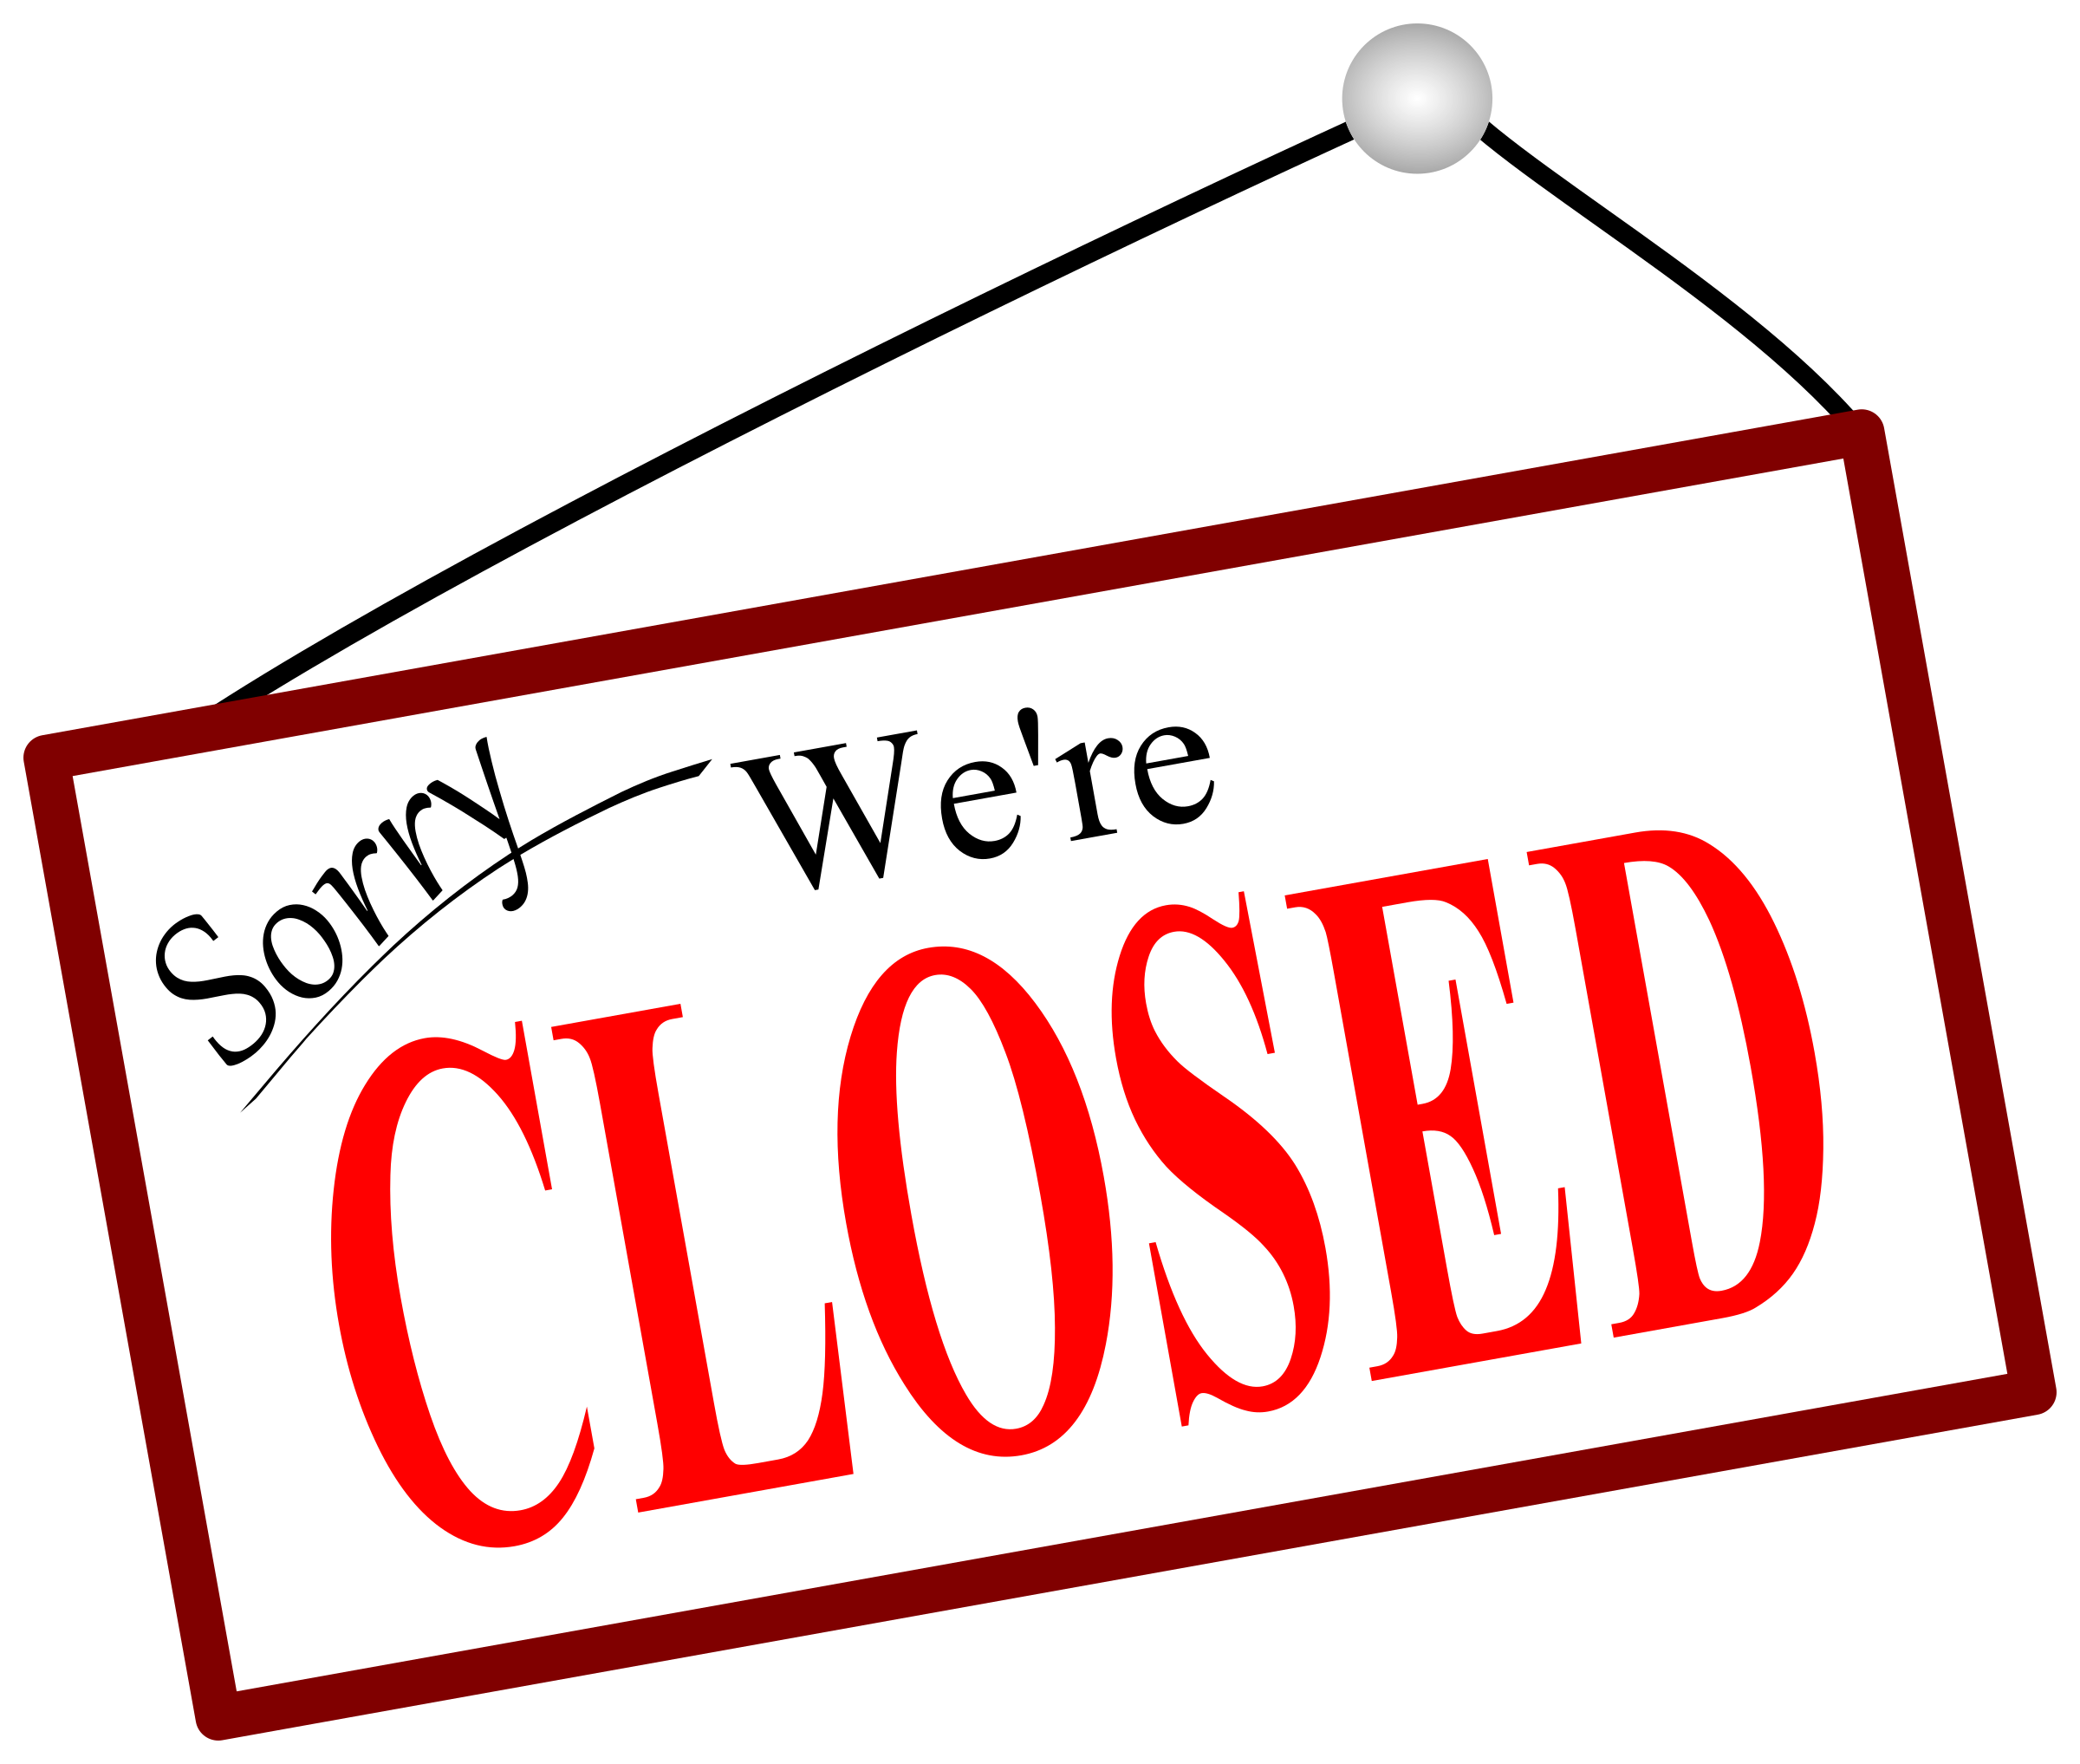 sorry-were-closed-sign-vector-clipart.png